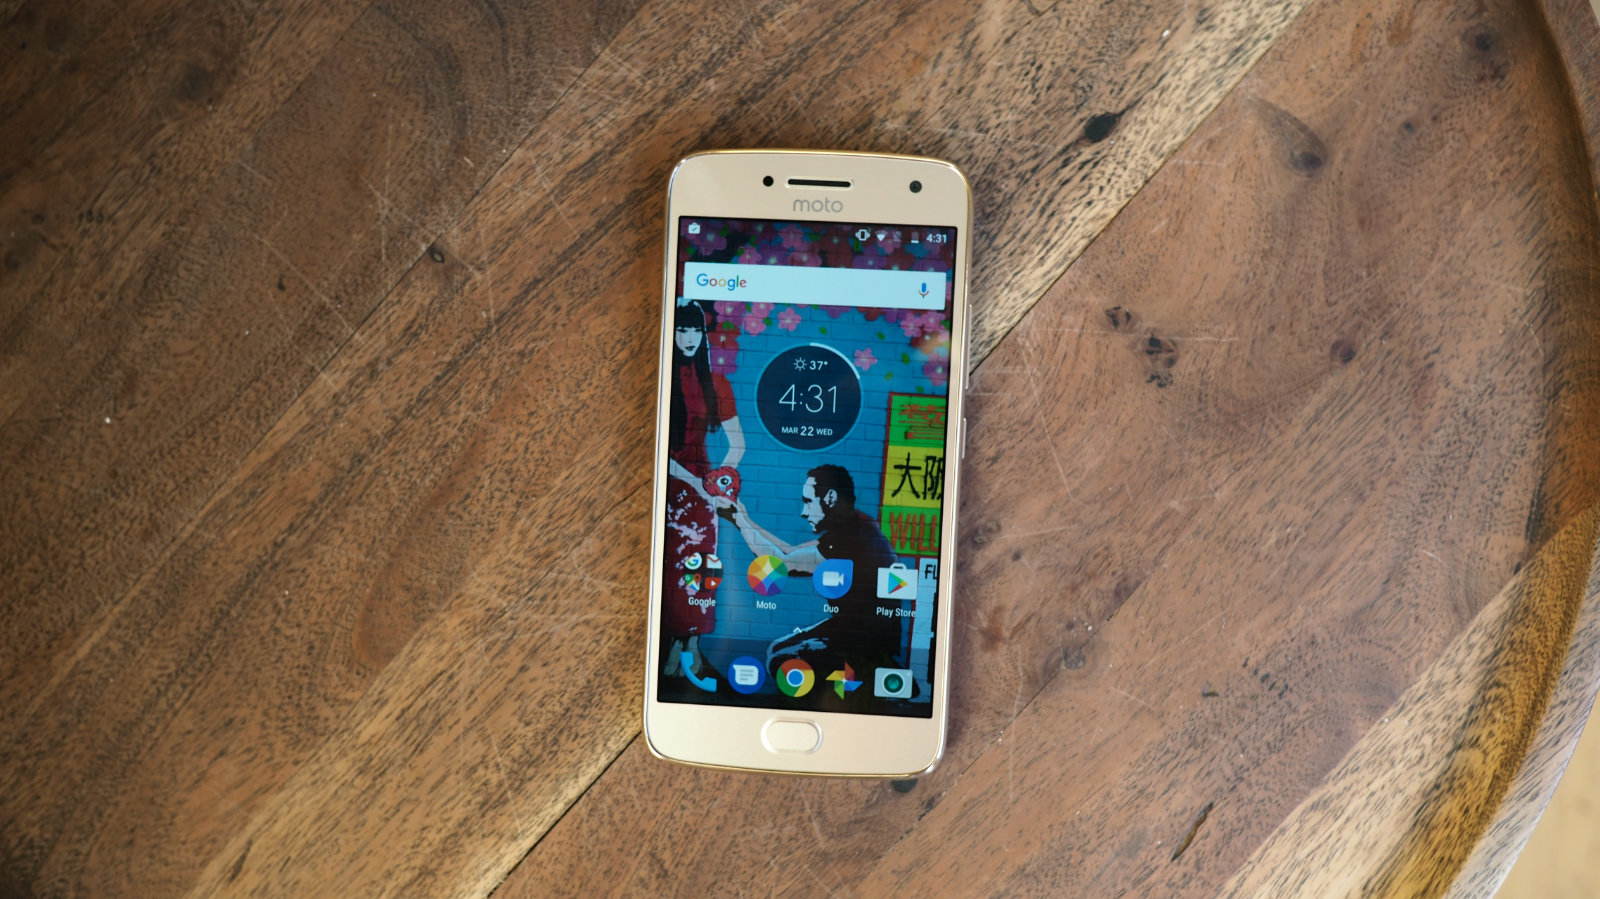 We now know much more about the Moto G5S Plus